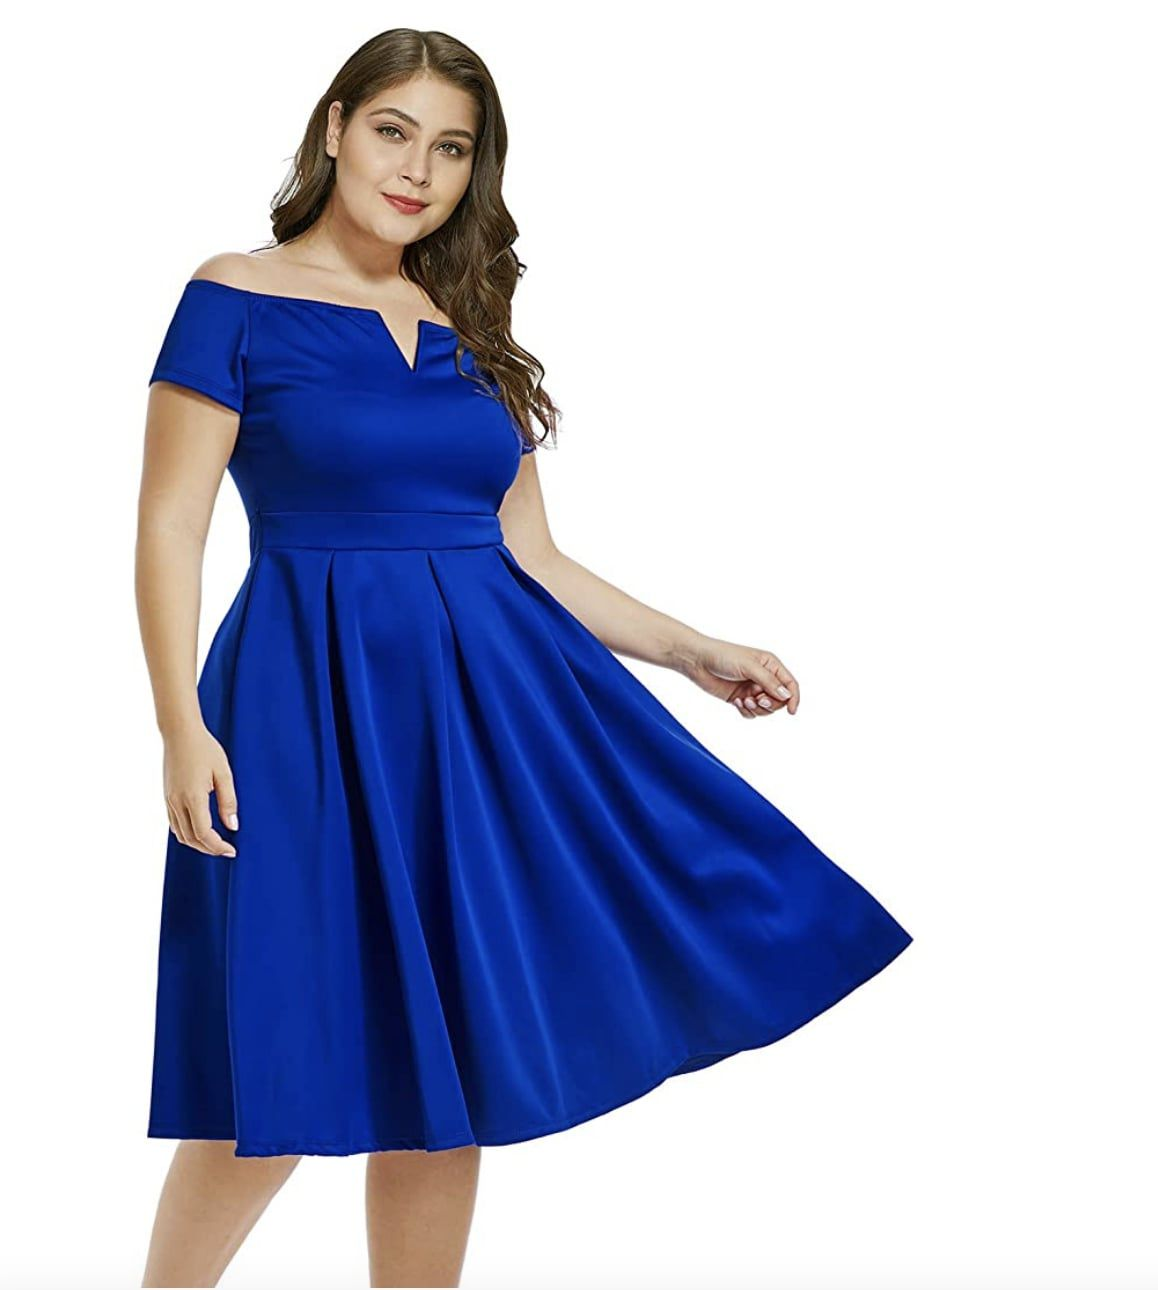 Style B07BPXV9LM Lalagen Blue Size 18 Flare Sweetheart Tall Height Wedding Guest Cocktail Dress on Queenly